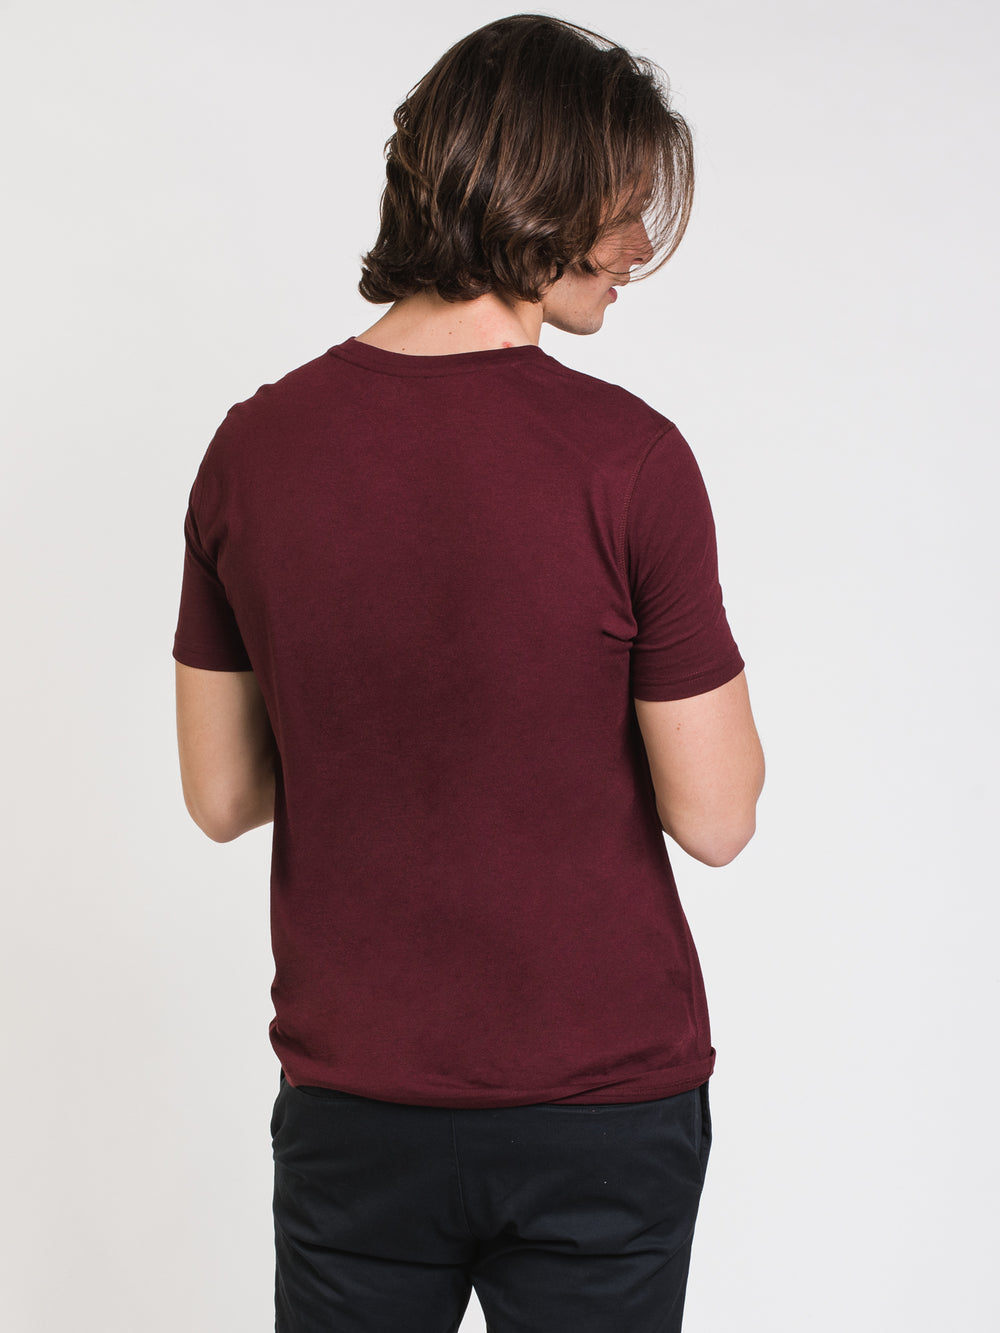 MENS VICTOR CREWNECK T - PORT